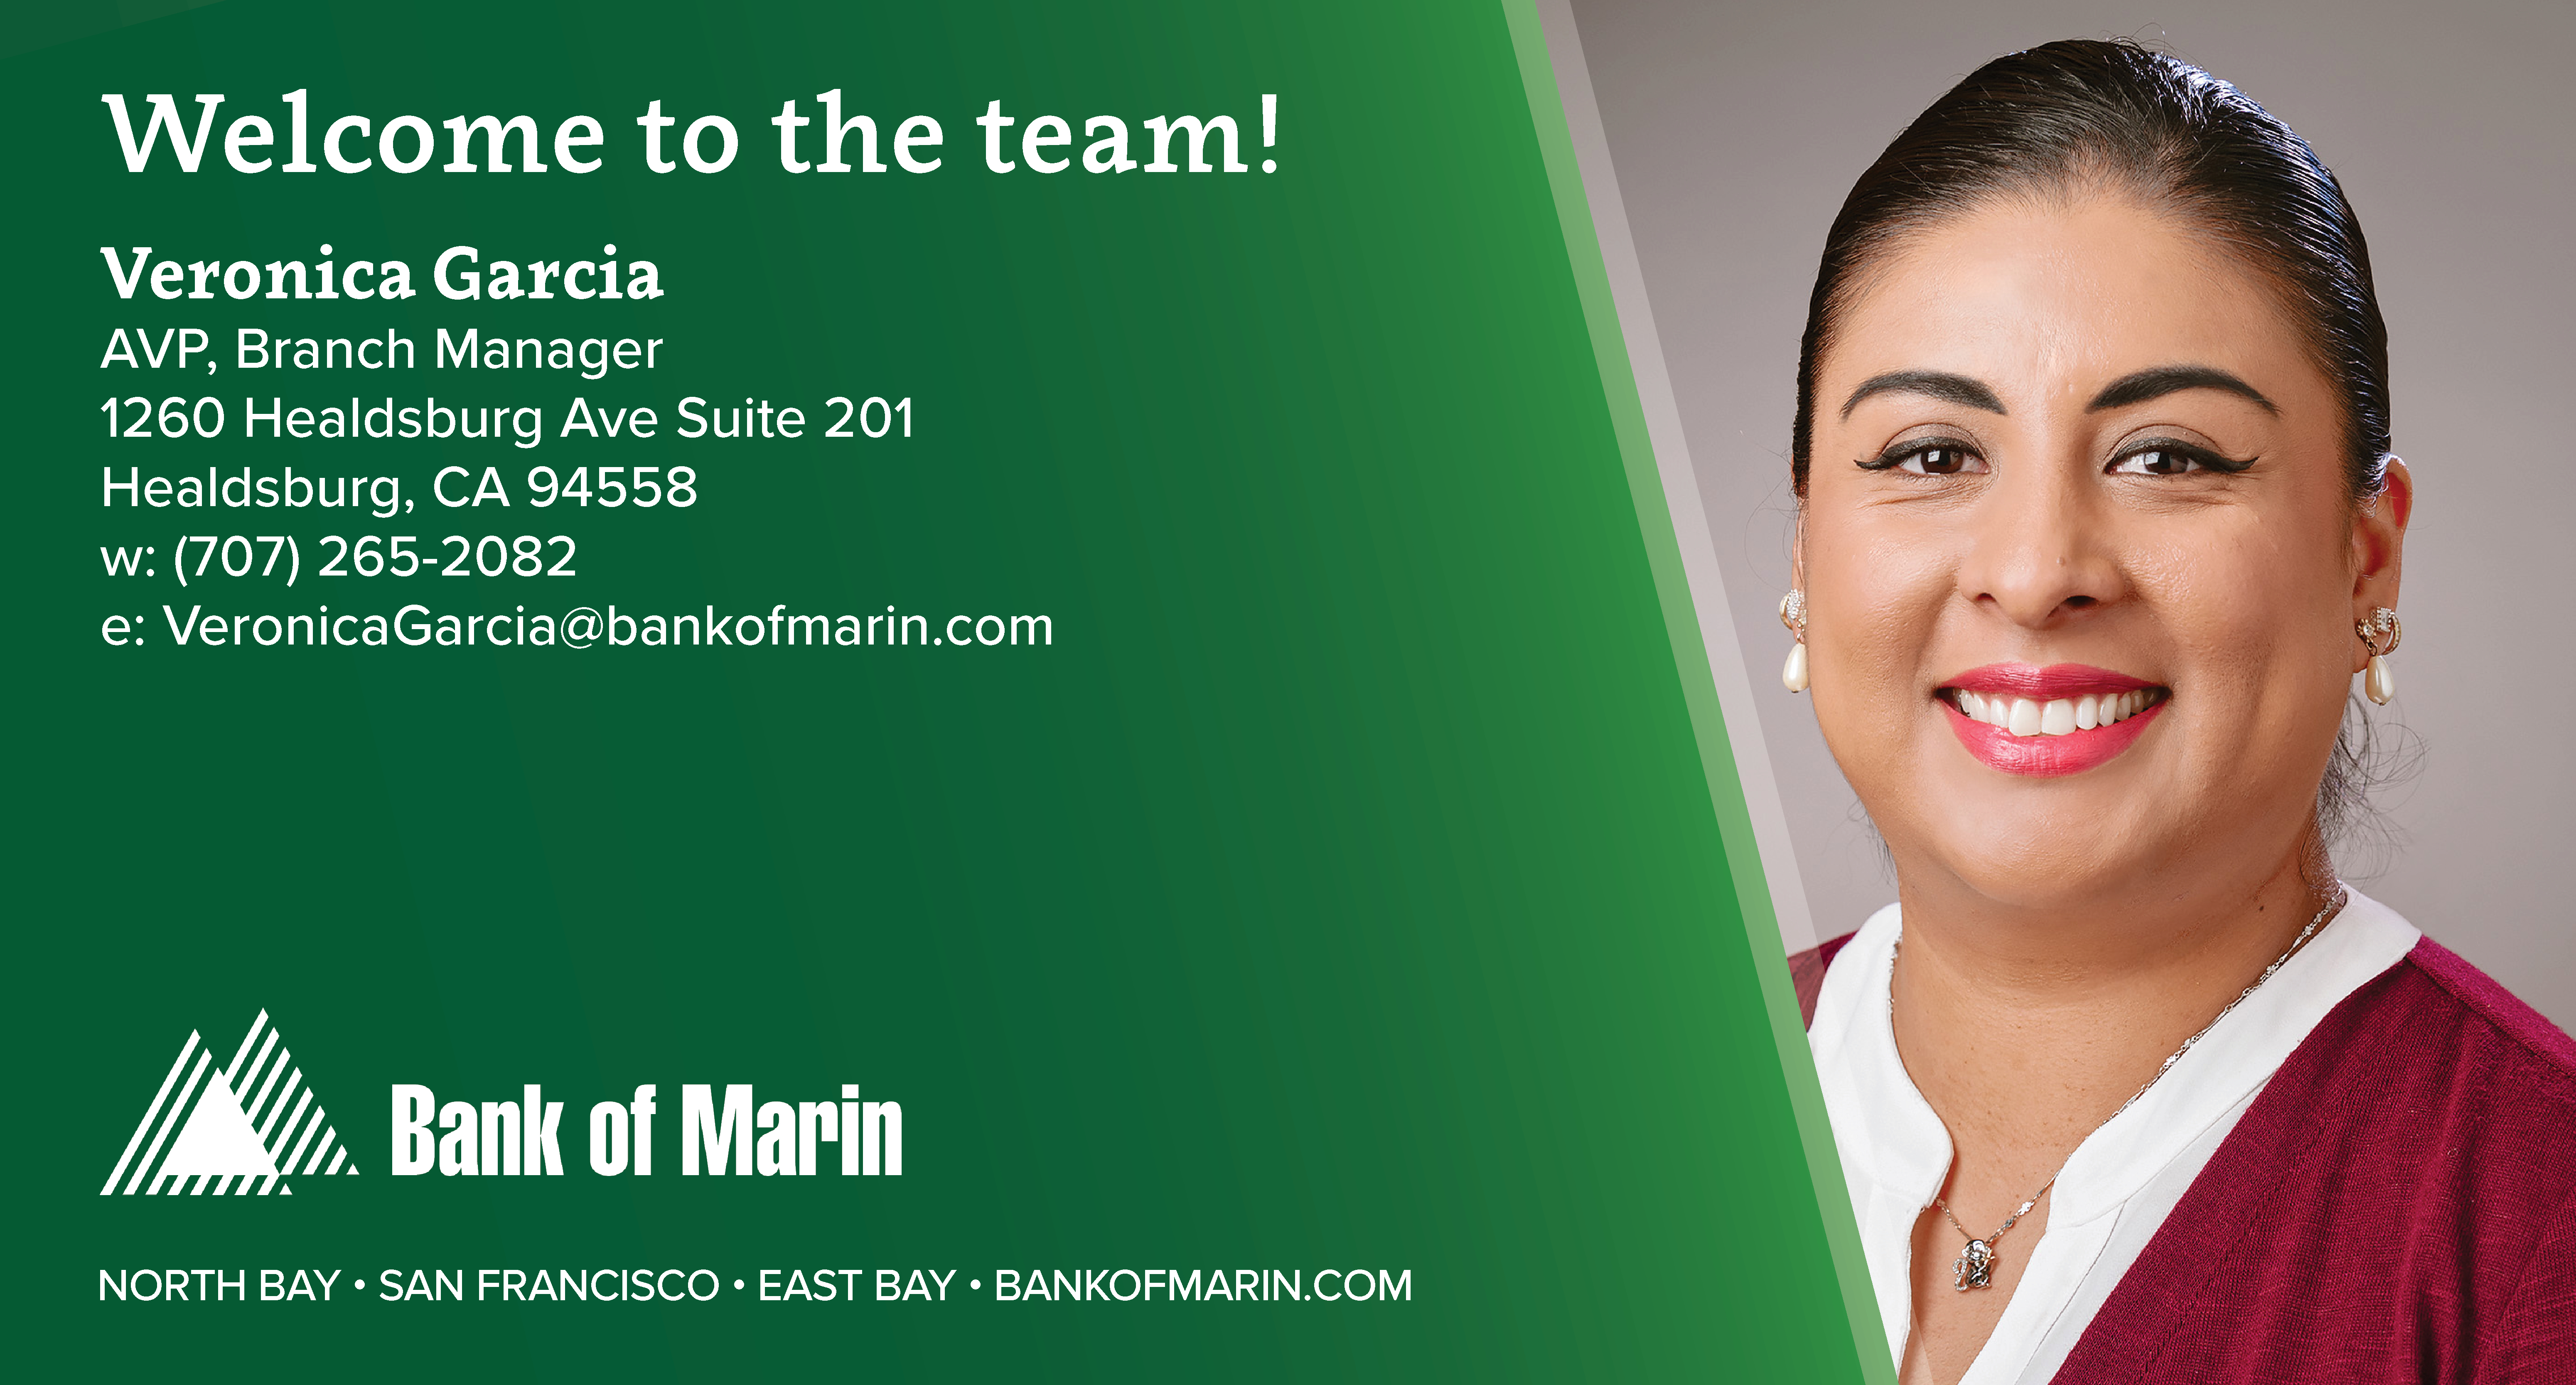 Picture of Veronica Garcia. Welcome to the Team! Veronica Garcia, AVP, Branch Manager. 1260 Healdsburg Ave Suite 201, Healdsburg, CA 95448. w: (707) 265-2082. e: veronicagarcia@bankofmarin.com. bank of marin. north bay san francisco east bay bankofmarin.com.